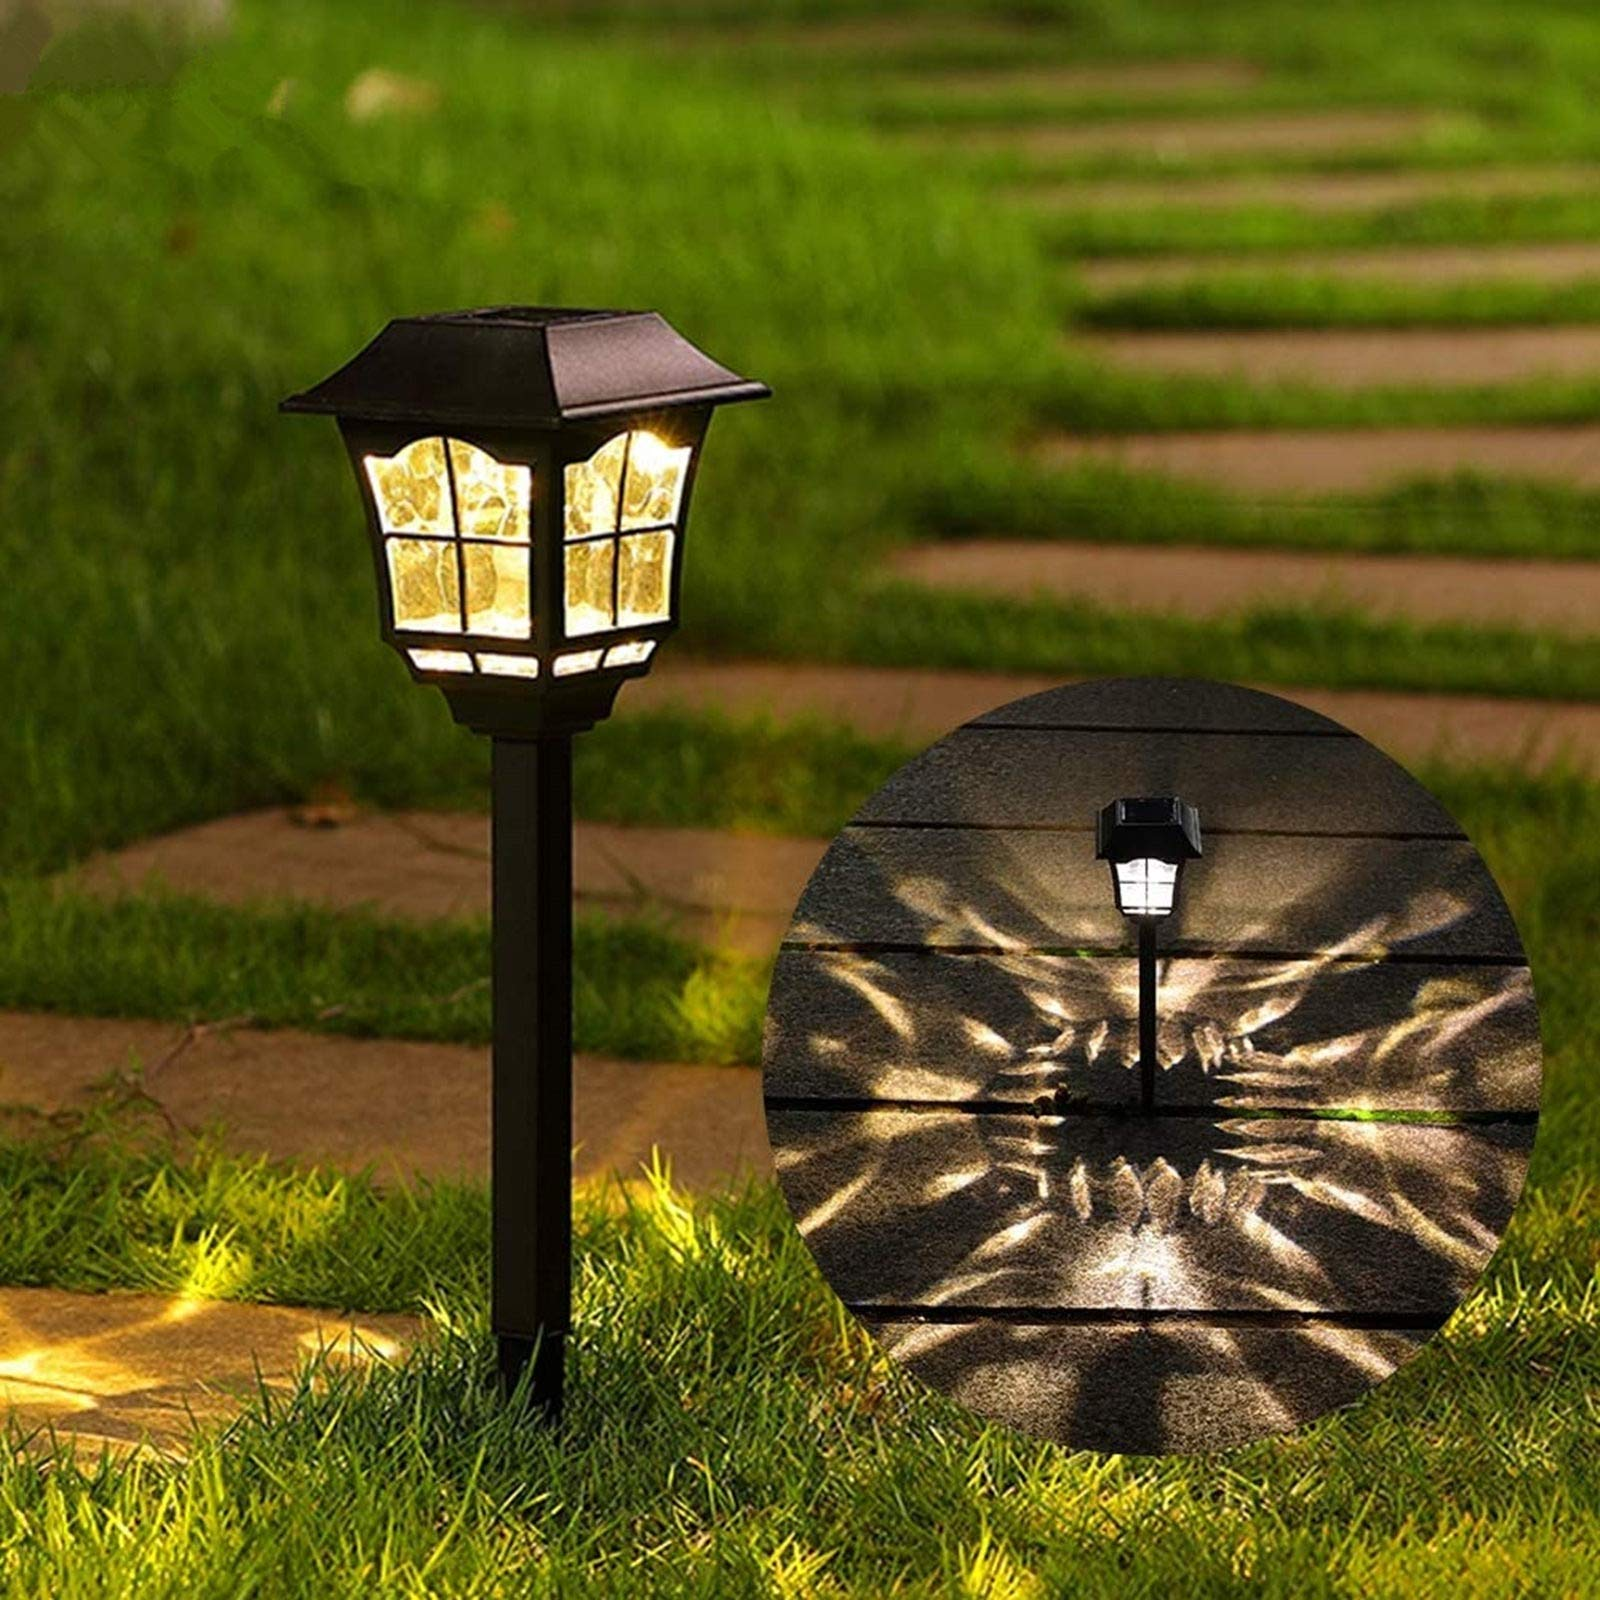 Maggift 8 Lumens Solar Pathway Lights Solar Garden Lights Outdoor Solar Landscape Lights for Lawn Patio Yard Pathway Walkway, 6 Pack